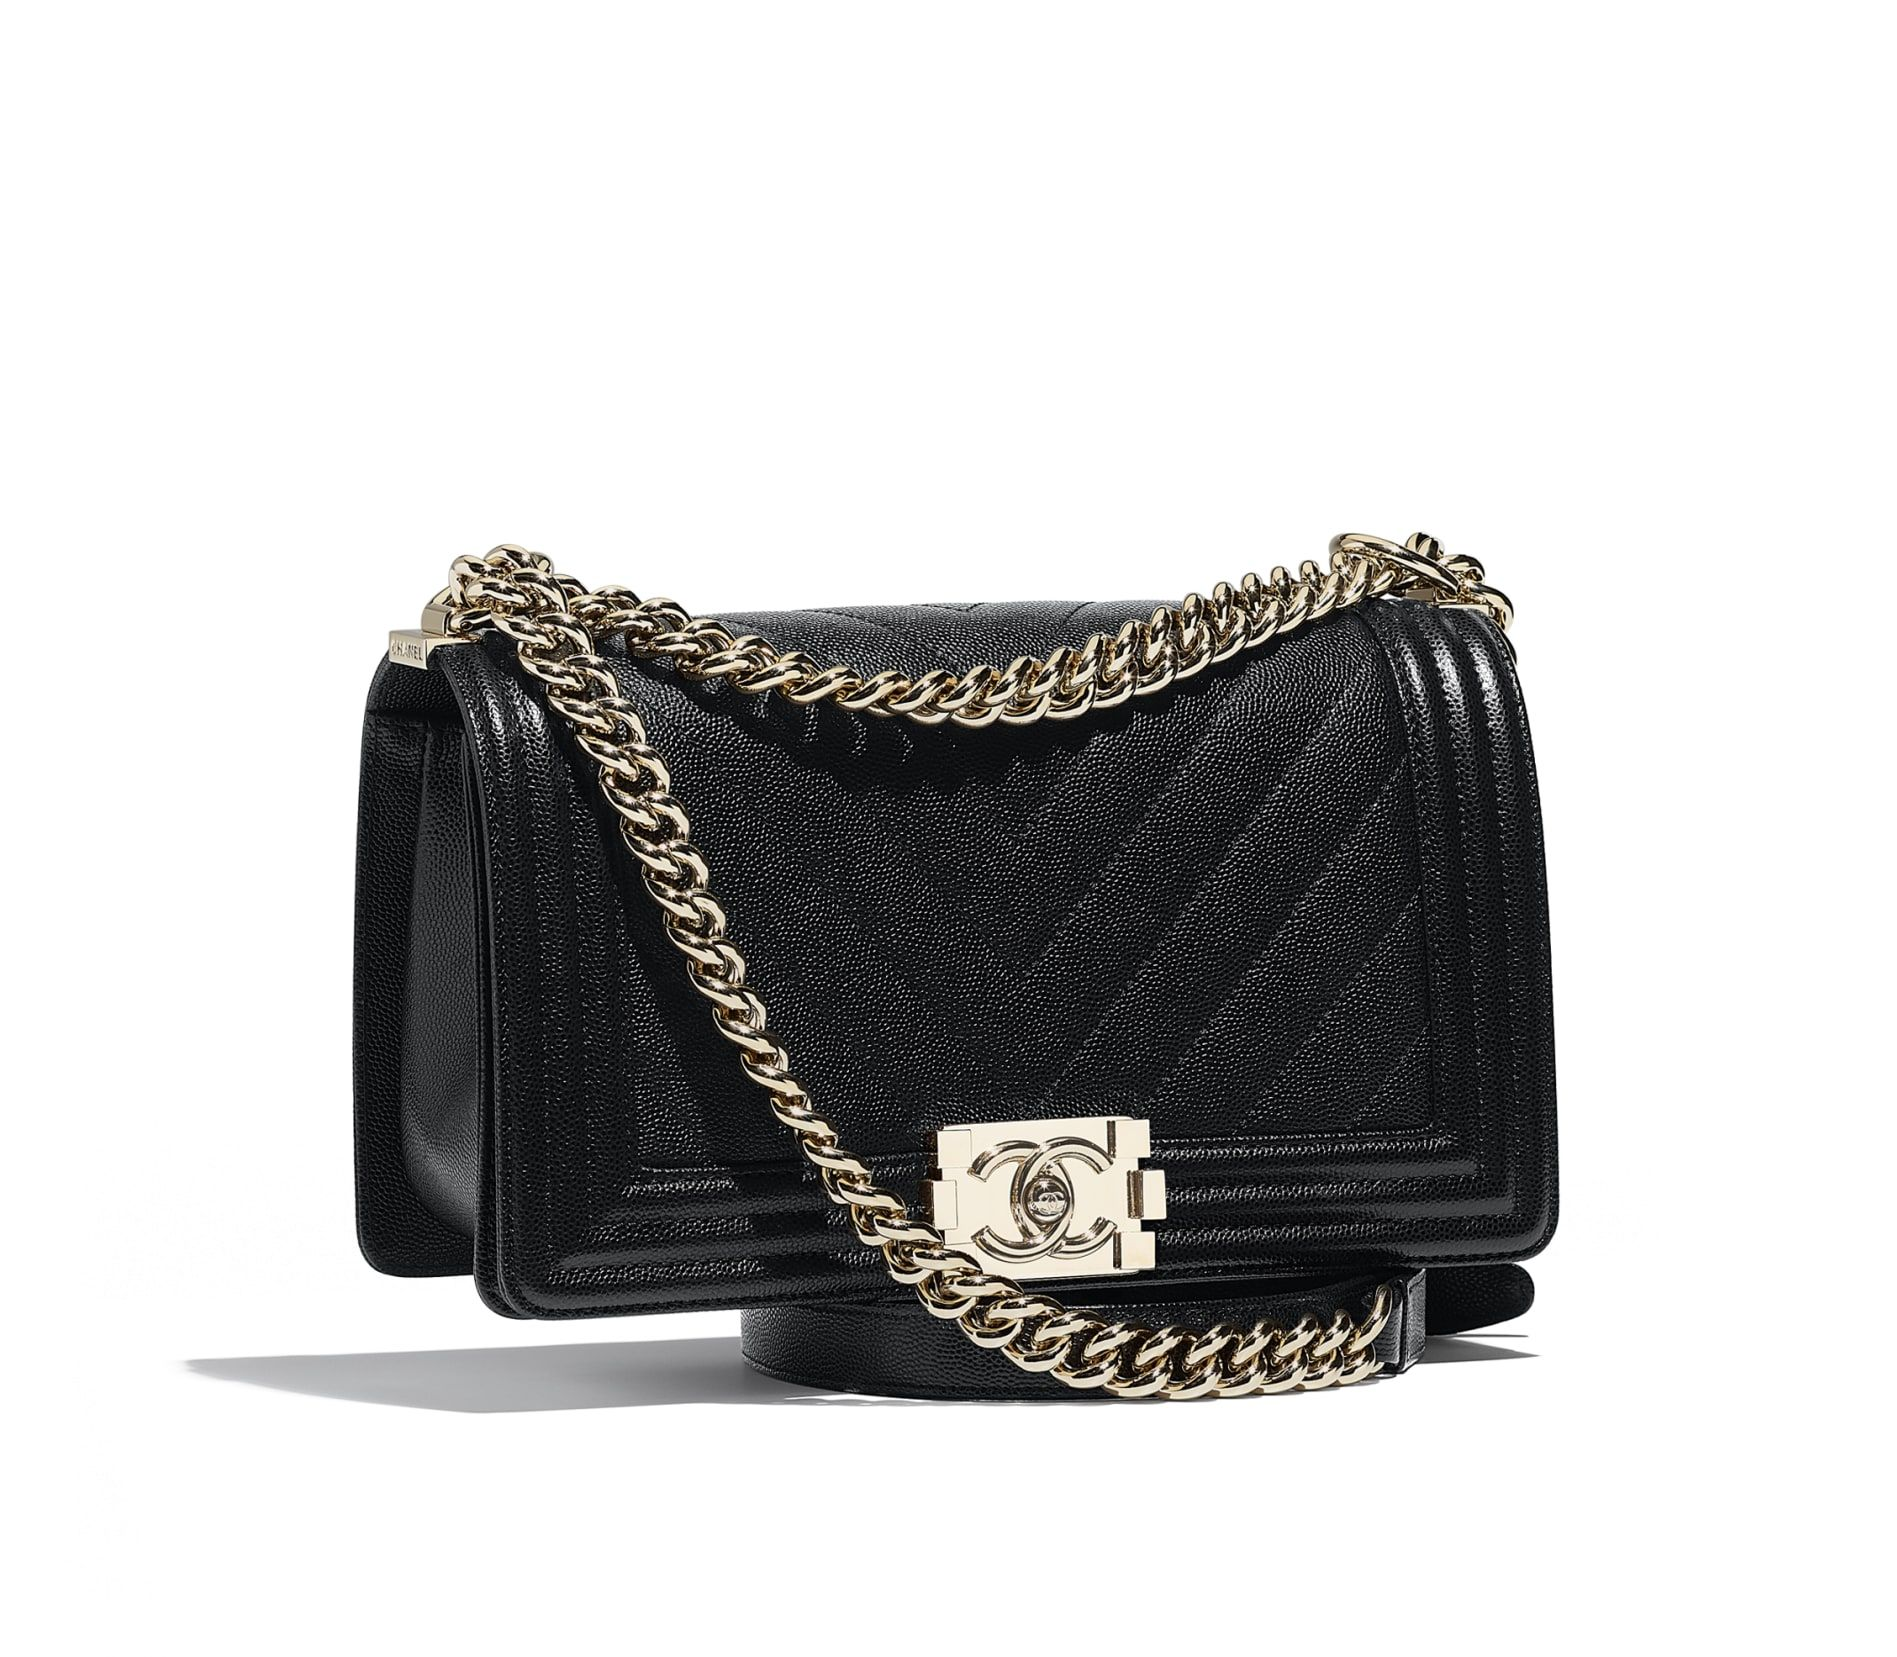 a414f6881e49d BOY CHANEL Handbag